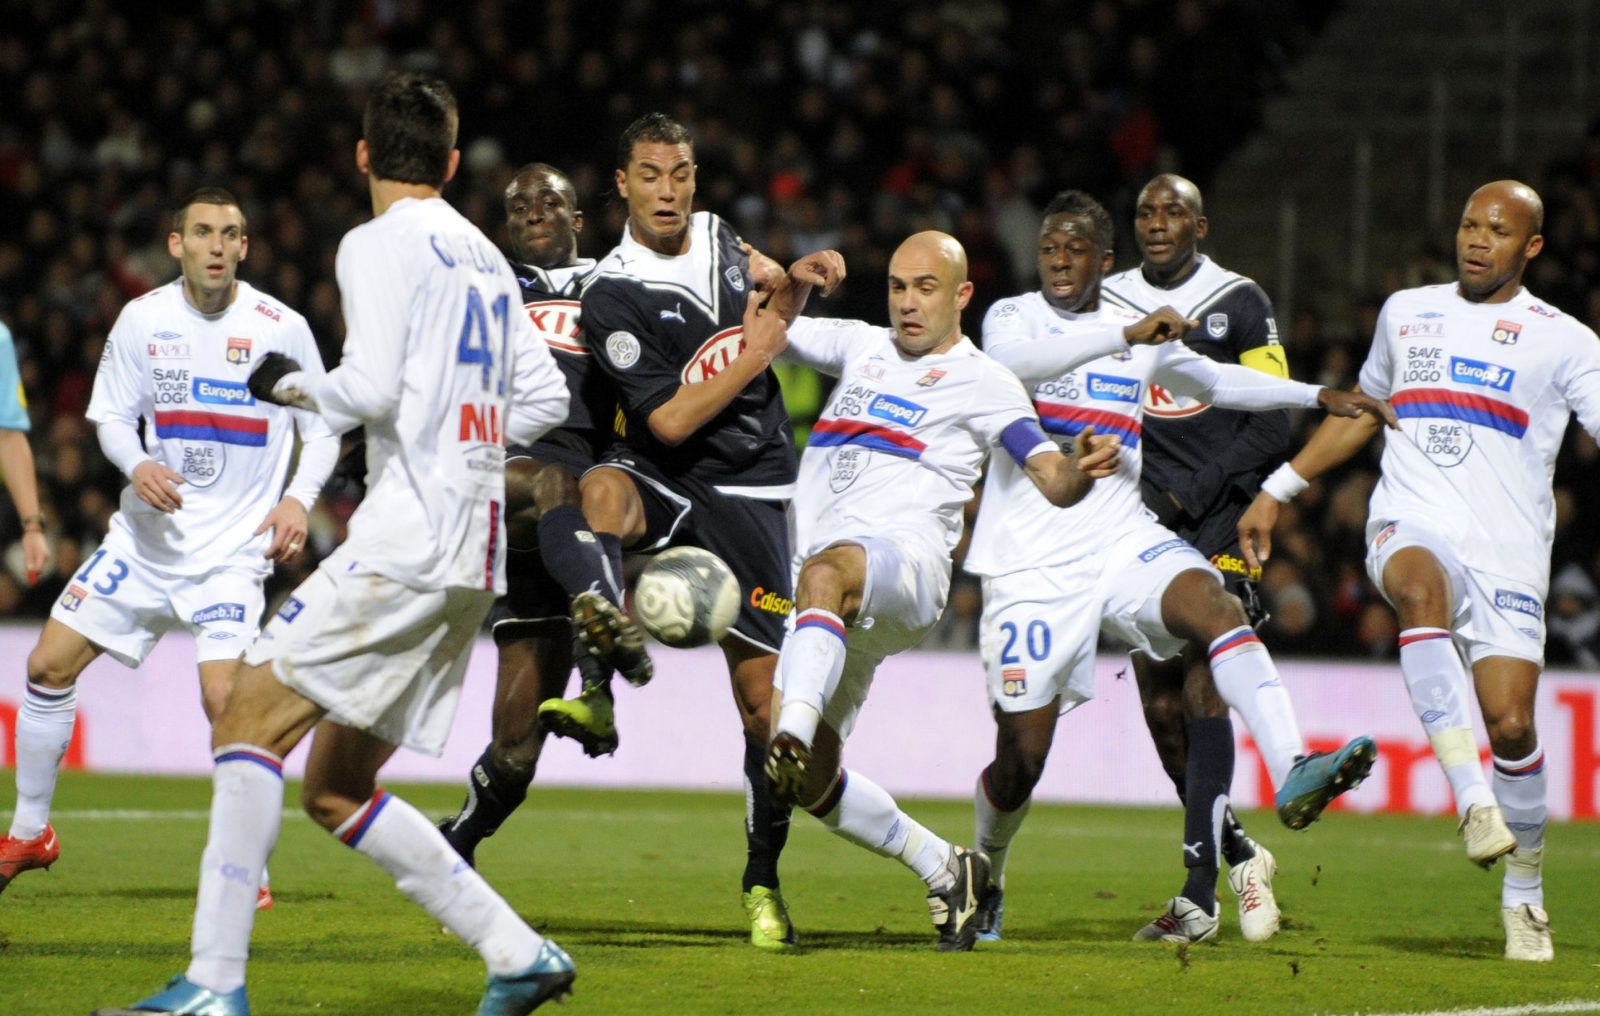 FOOTBALL - FRENCH CHAMPIONSHIP 2009/2010 - L1 - OLYMPIQUE LYONNAIS v GIRONDINS BORDEAUX - 13/12/2009 - PHOTO JEAN MARIE HERVIO / DPPI - MAROUANE CHAMAKH (BDX) / CRIS (OL)